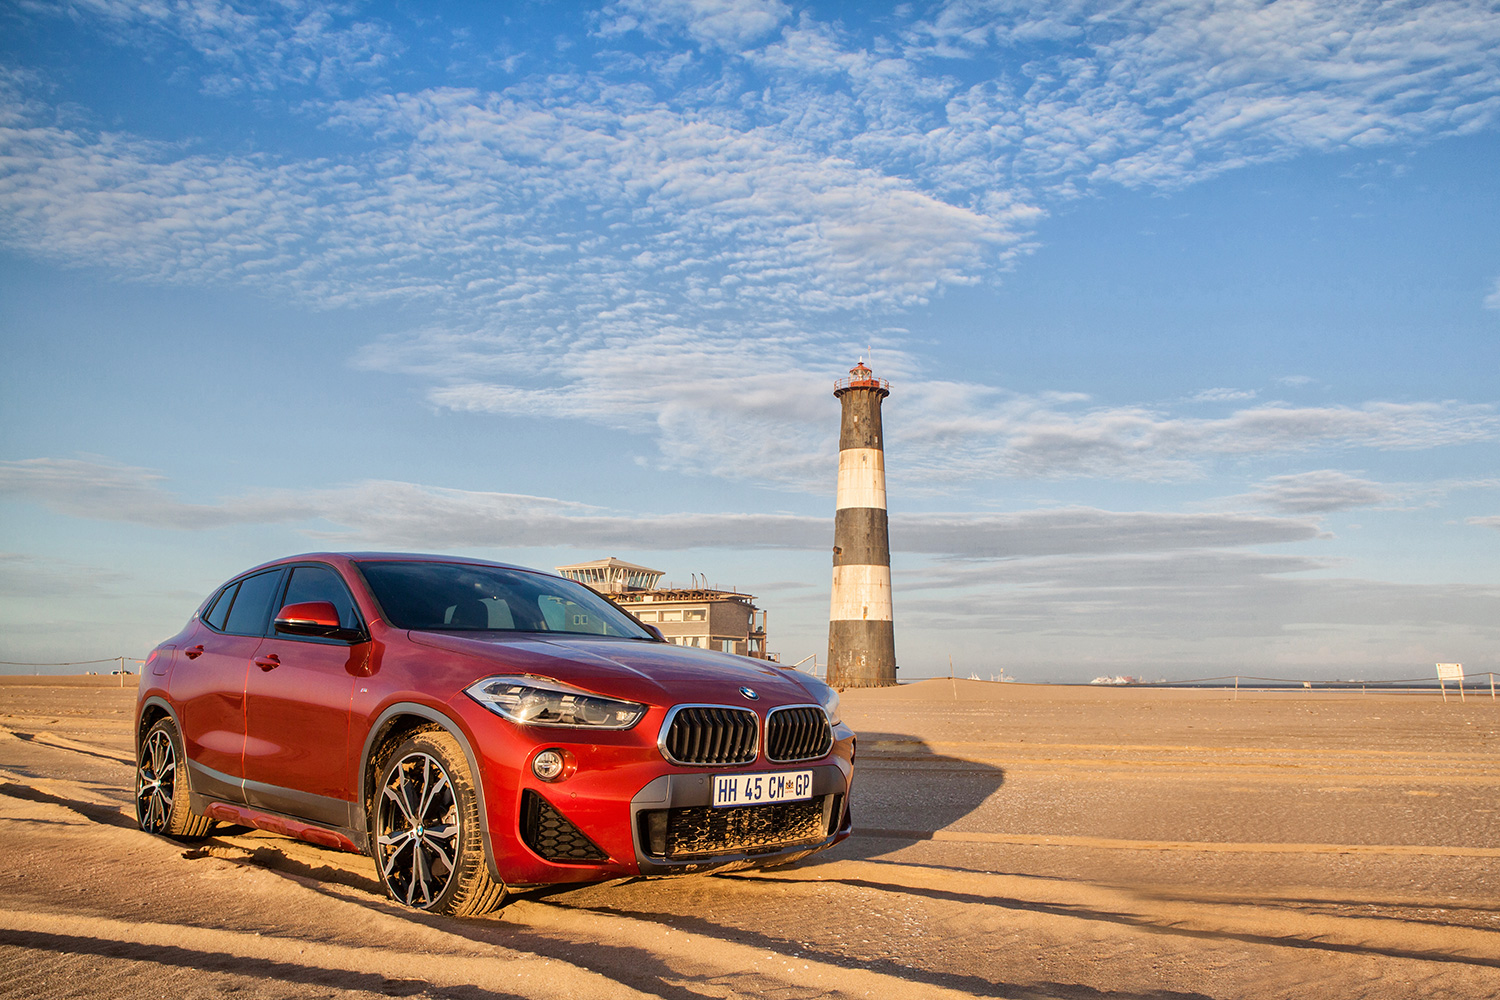 <p>The BMW X2 is a current leading light in the new small SUV/crossover market. But, is it a real X-model? FERDI DE VOS took it on a 4,000-kilometre road trip to Namibia's Pelican Point lighthouse in Walvis Bay, to find out. Keep the momentum. Keep the revs up. More momentum. [&hellip;]</p>